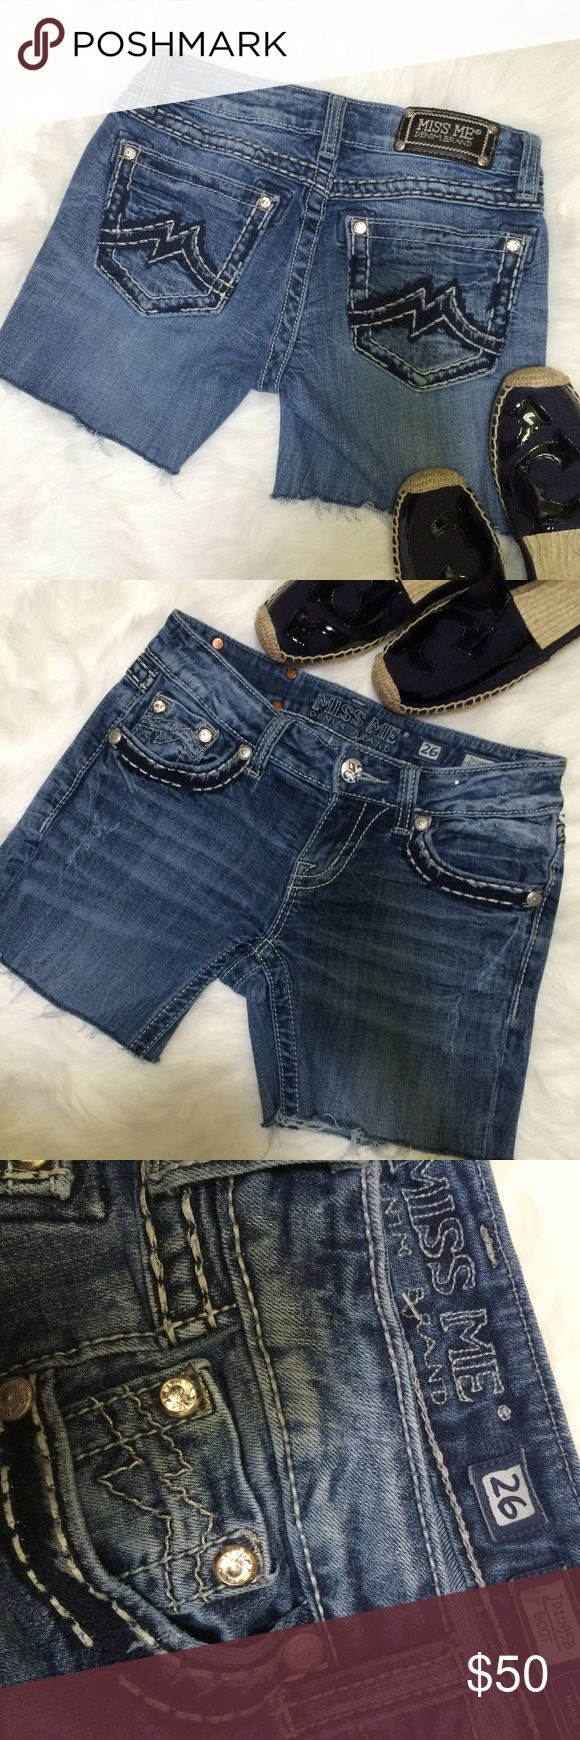 """Miss me Cut off distressed shorts Sz 26 Like new condition. 4 packet shorts with blings all intact. Inseam is 4"""" Miss Me Shorts Jean Shorts"""